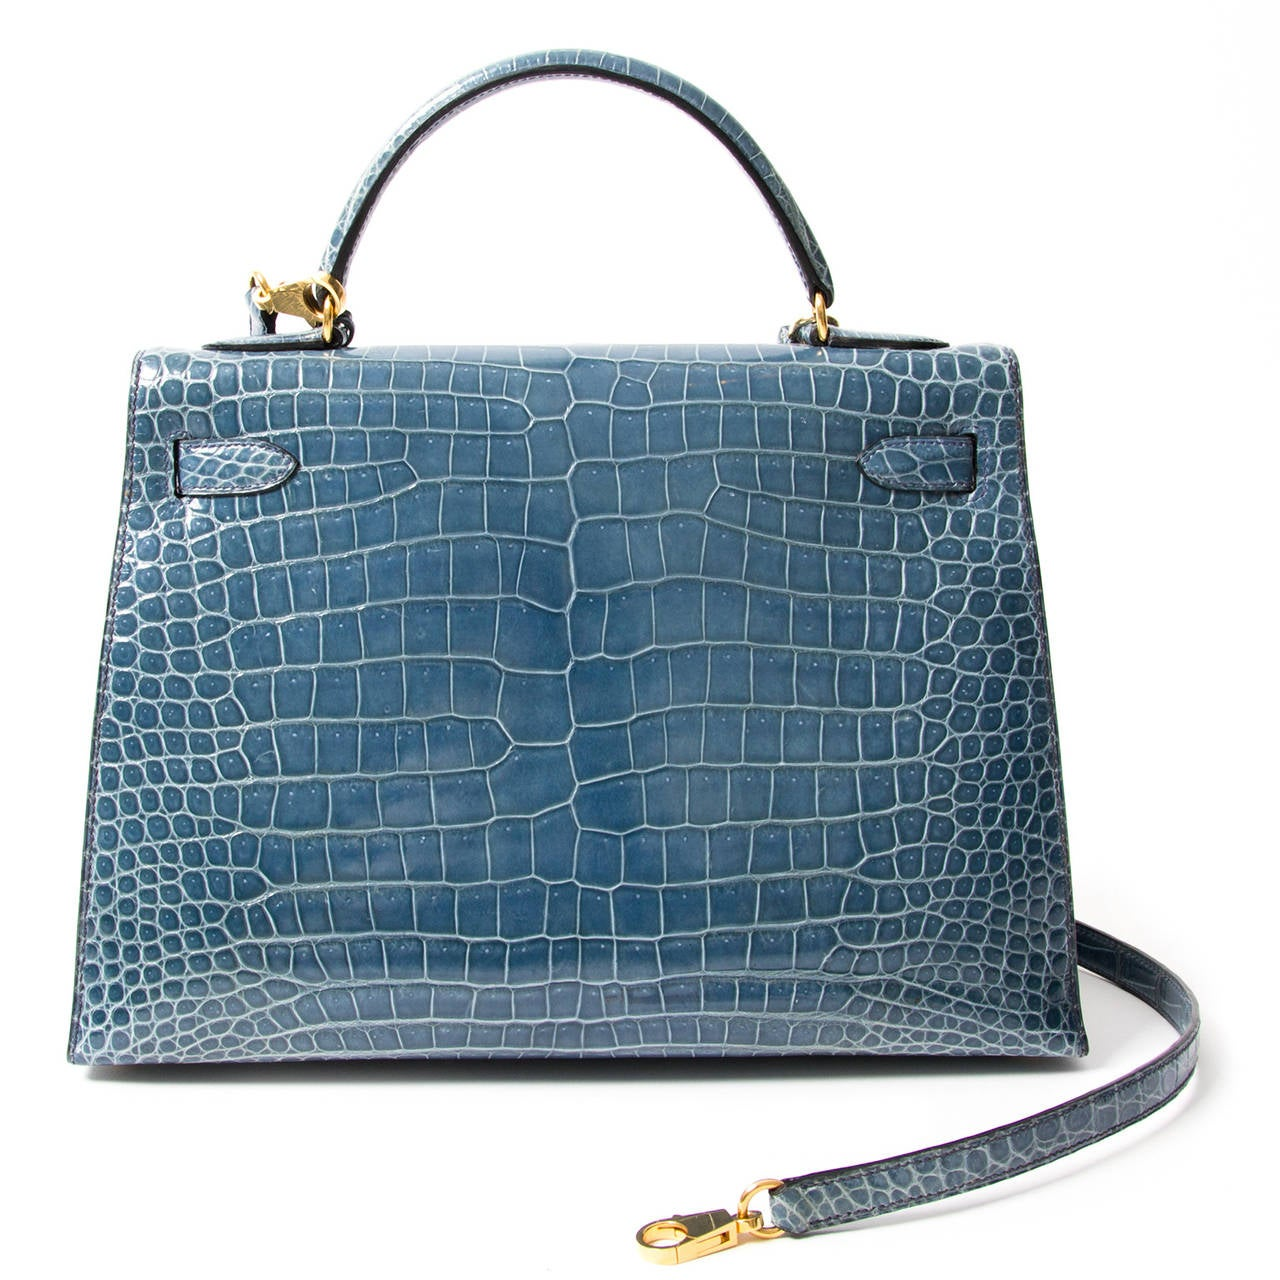 Rare Hermes Blue Jean Porosus Crocodile 32 Kelly GHW For Sale 2